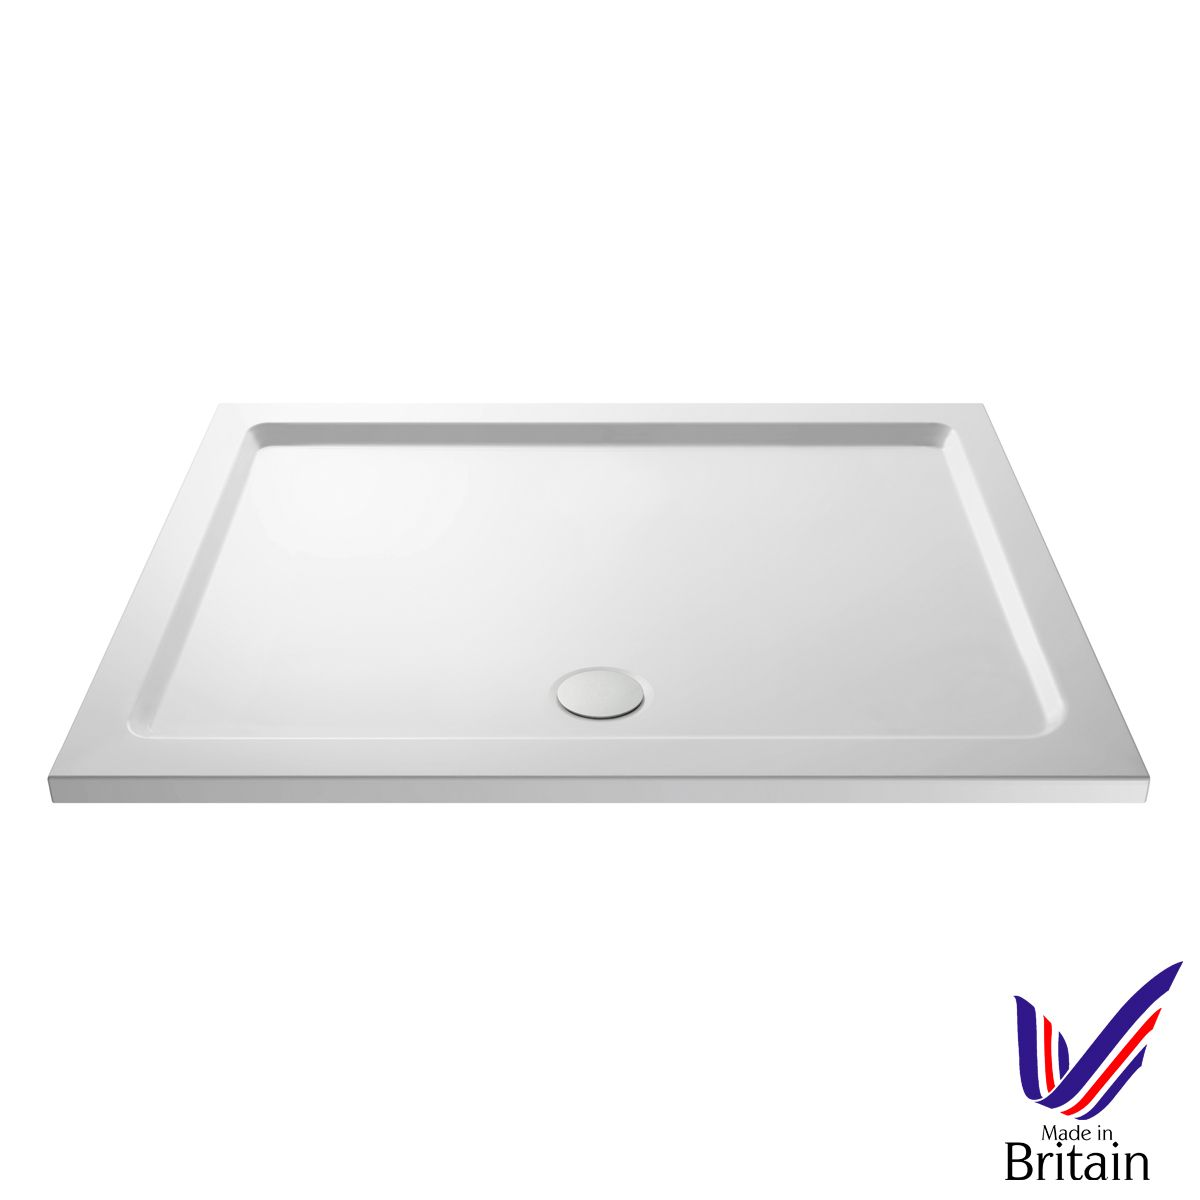 1700 x 800 Shower Tray Rectangular Low Profile by Pearlstone